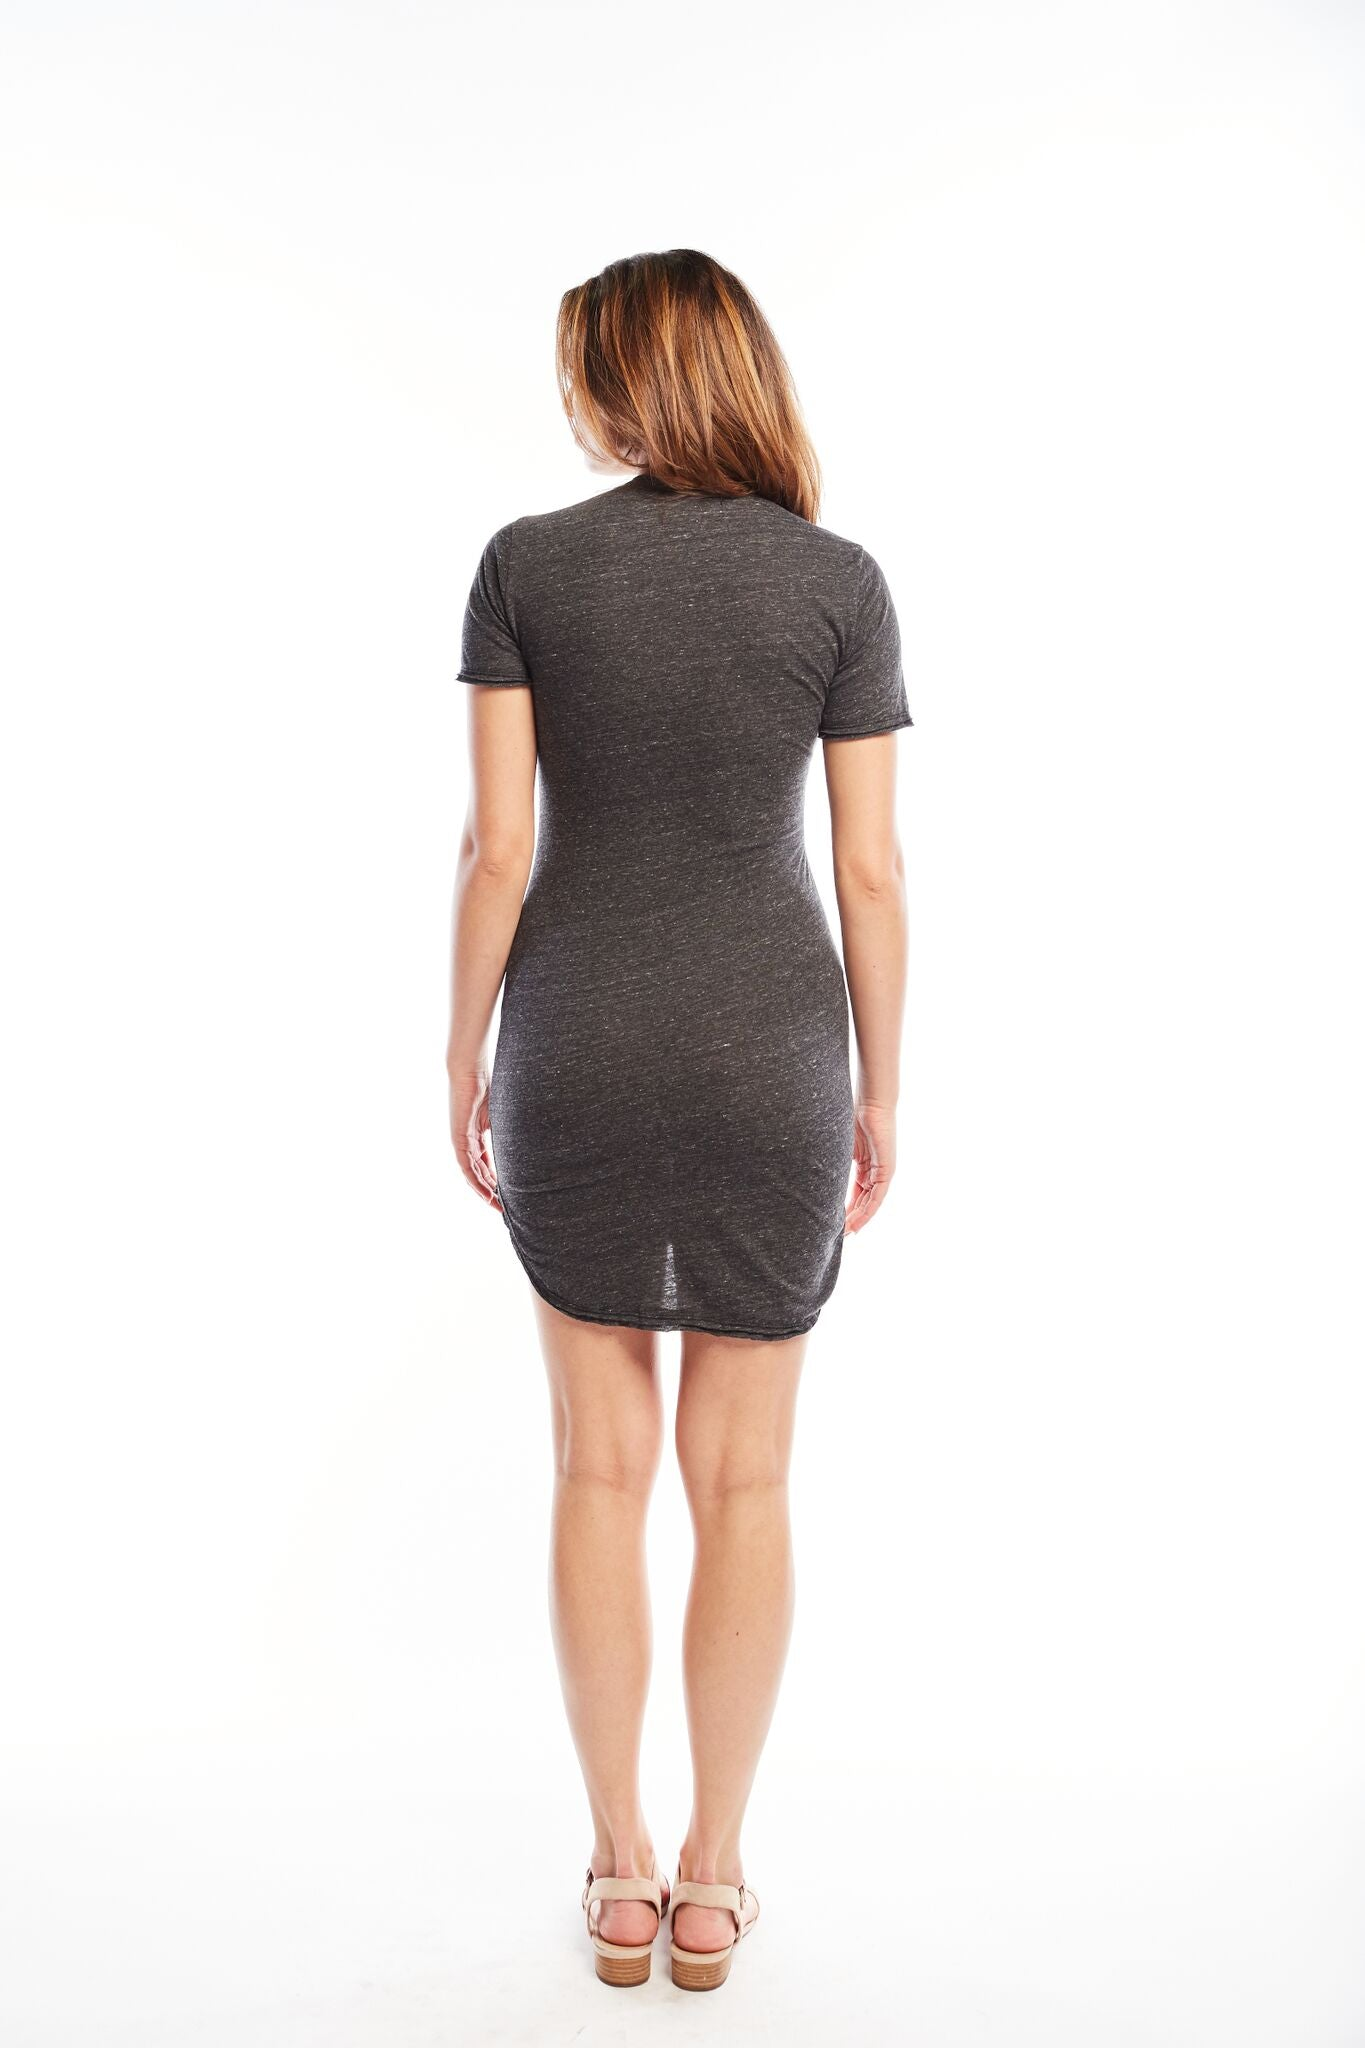 Kristy Tee Dress | DK Grey Heather